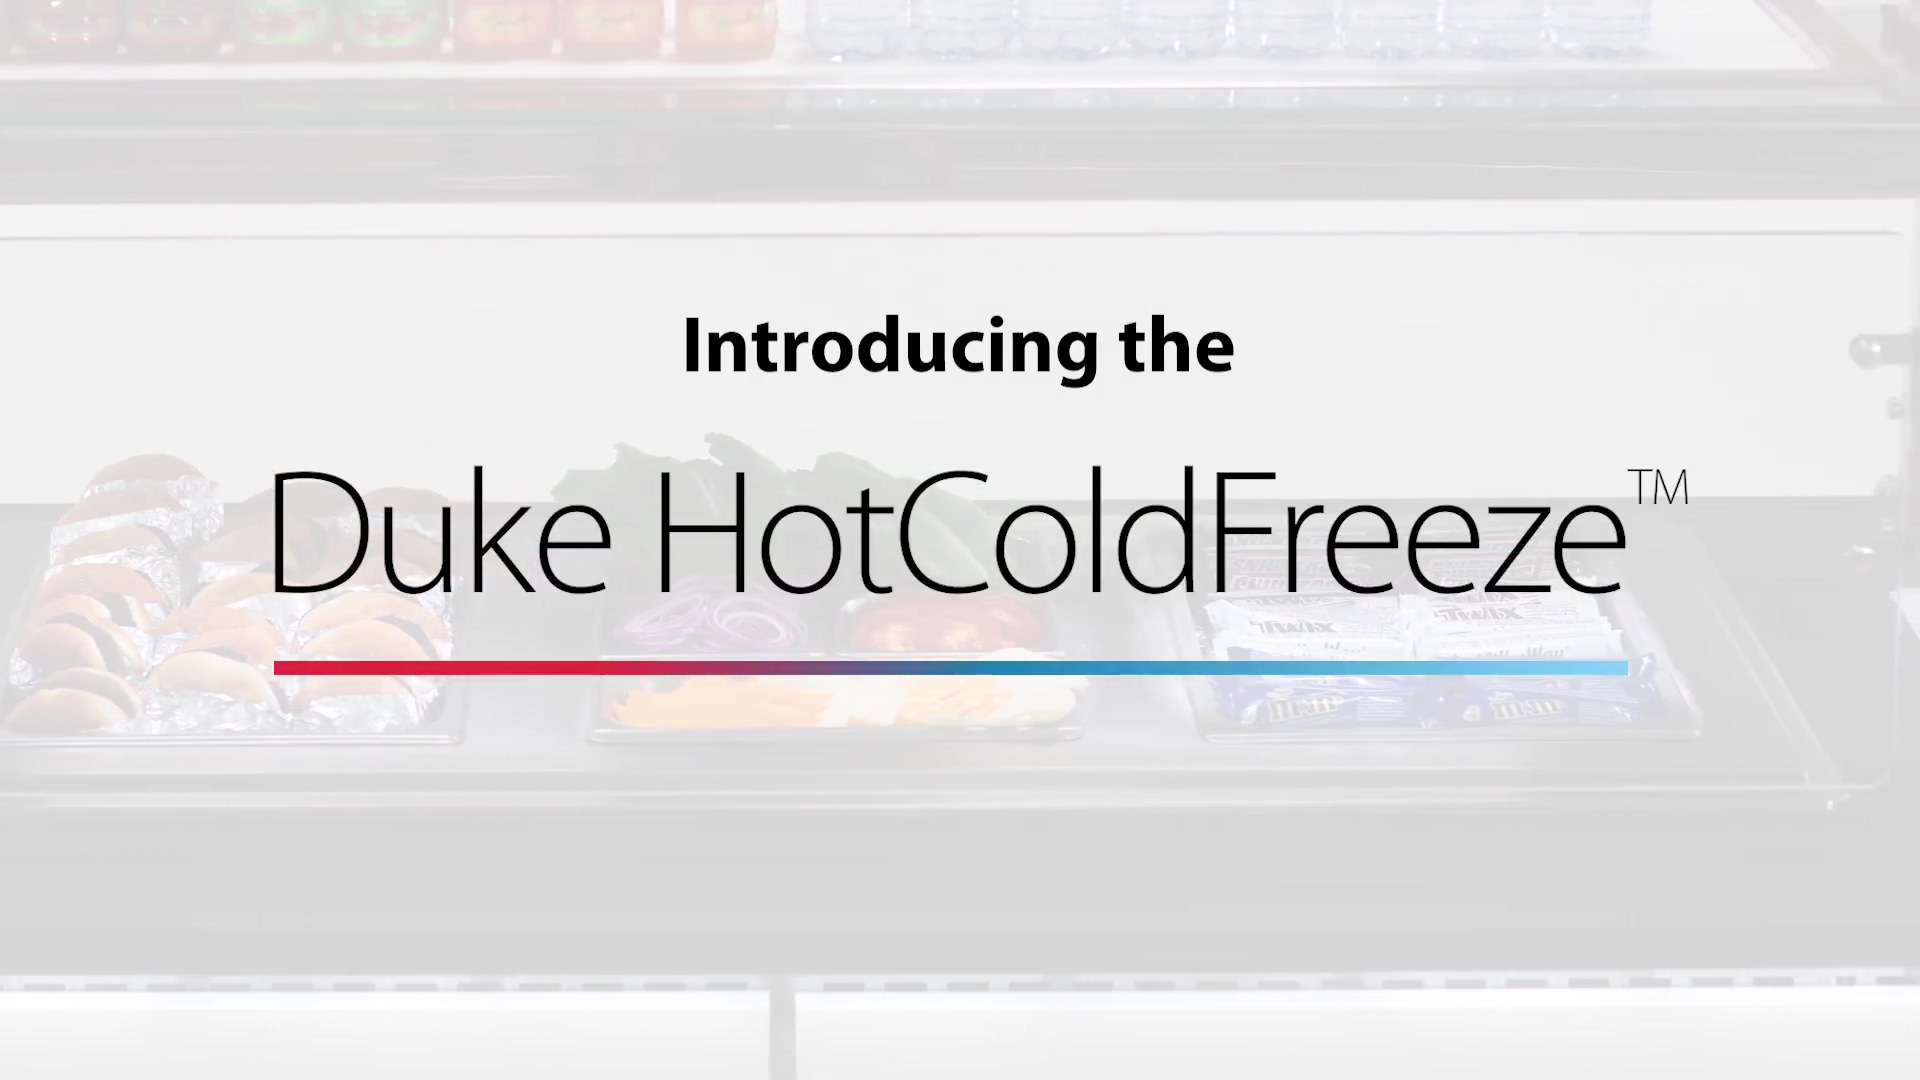 The Duke Hot-Cold-Freeze Food Well System Overview